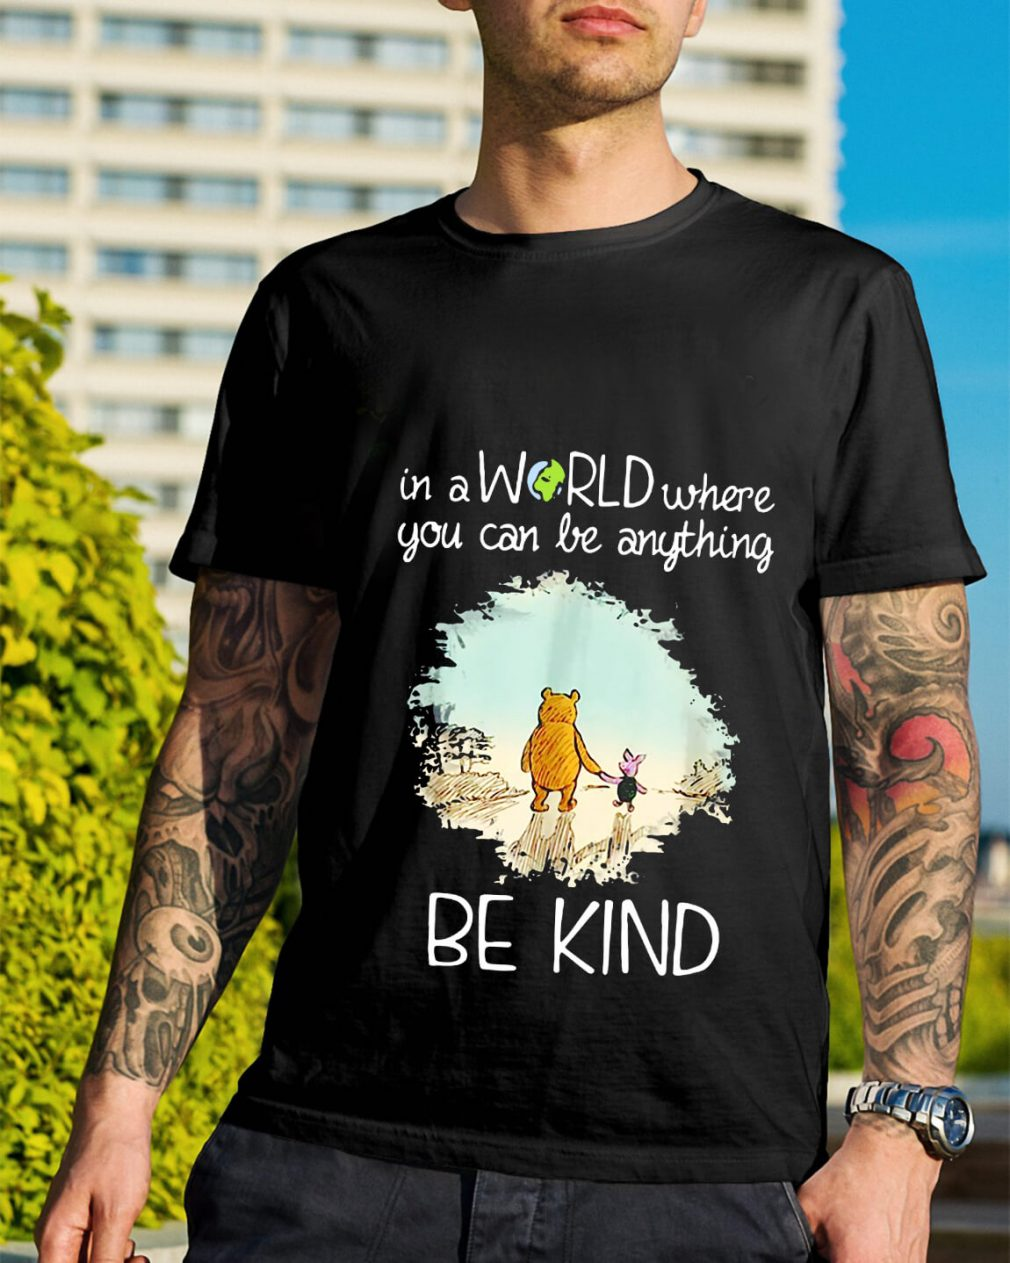 Pooh and Piglet in a world where you can be anything be kind shirt